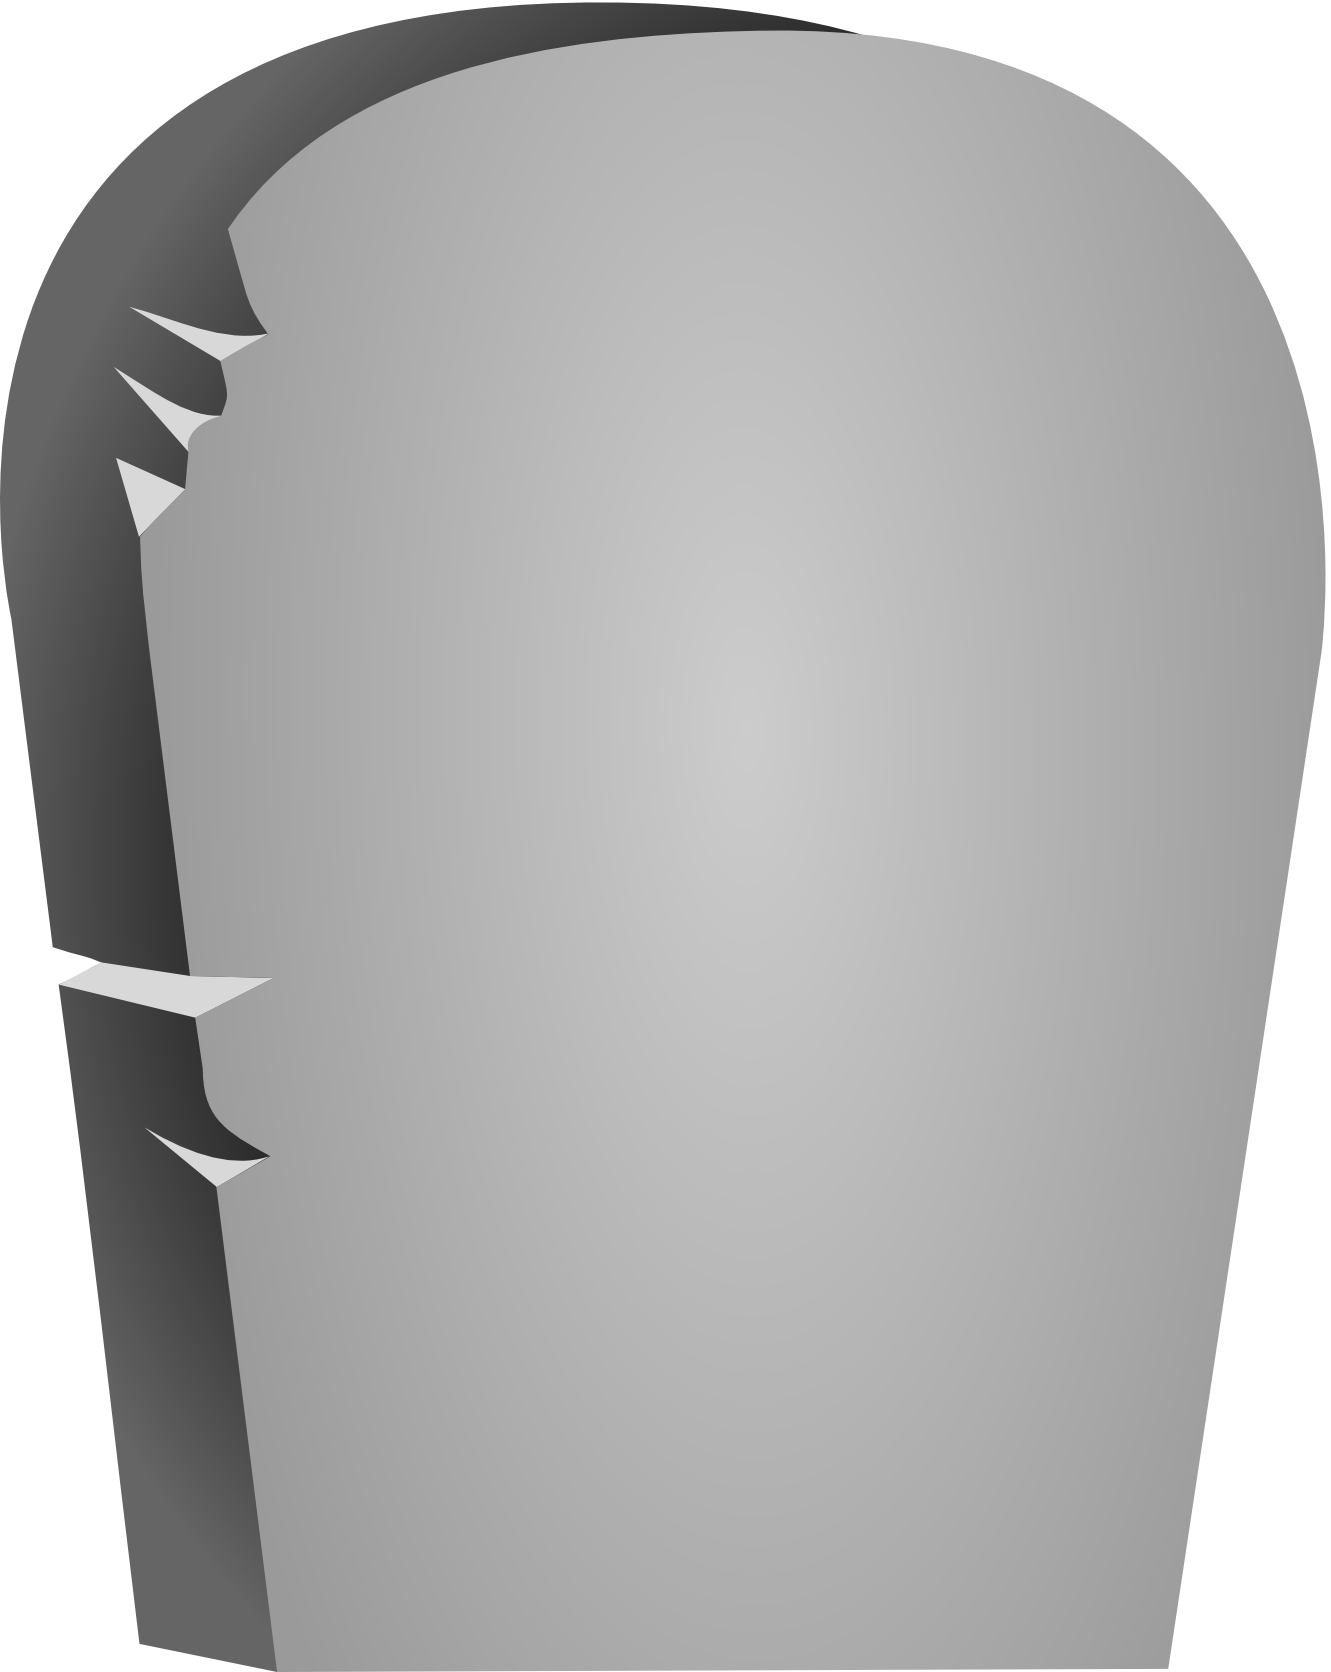 Rip Tombstone Clipart.